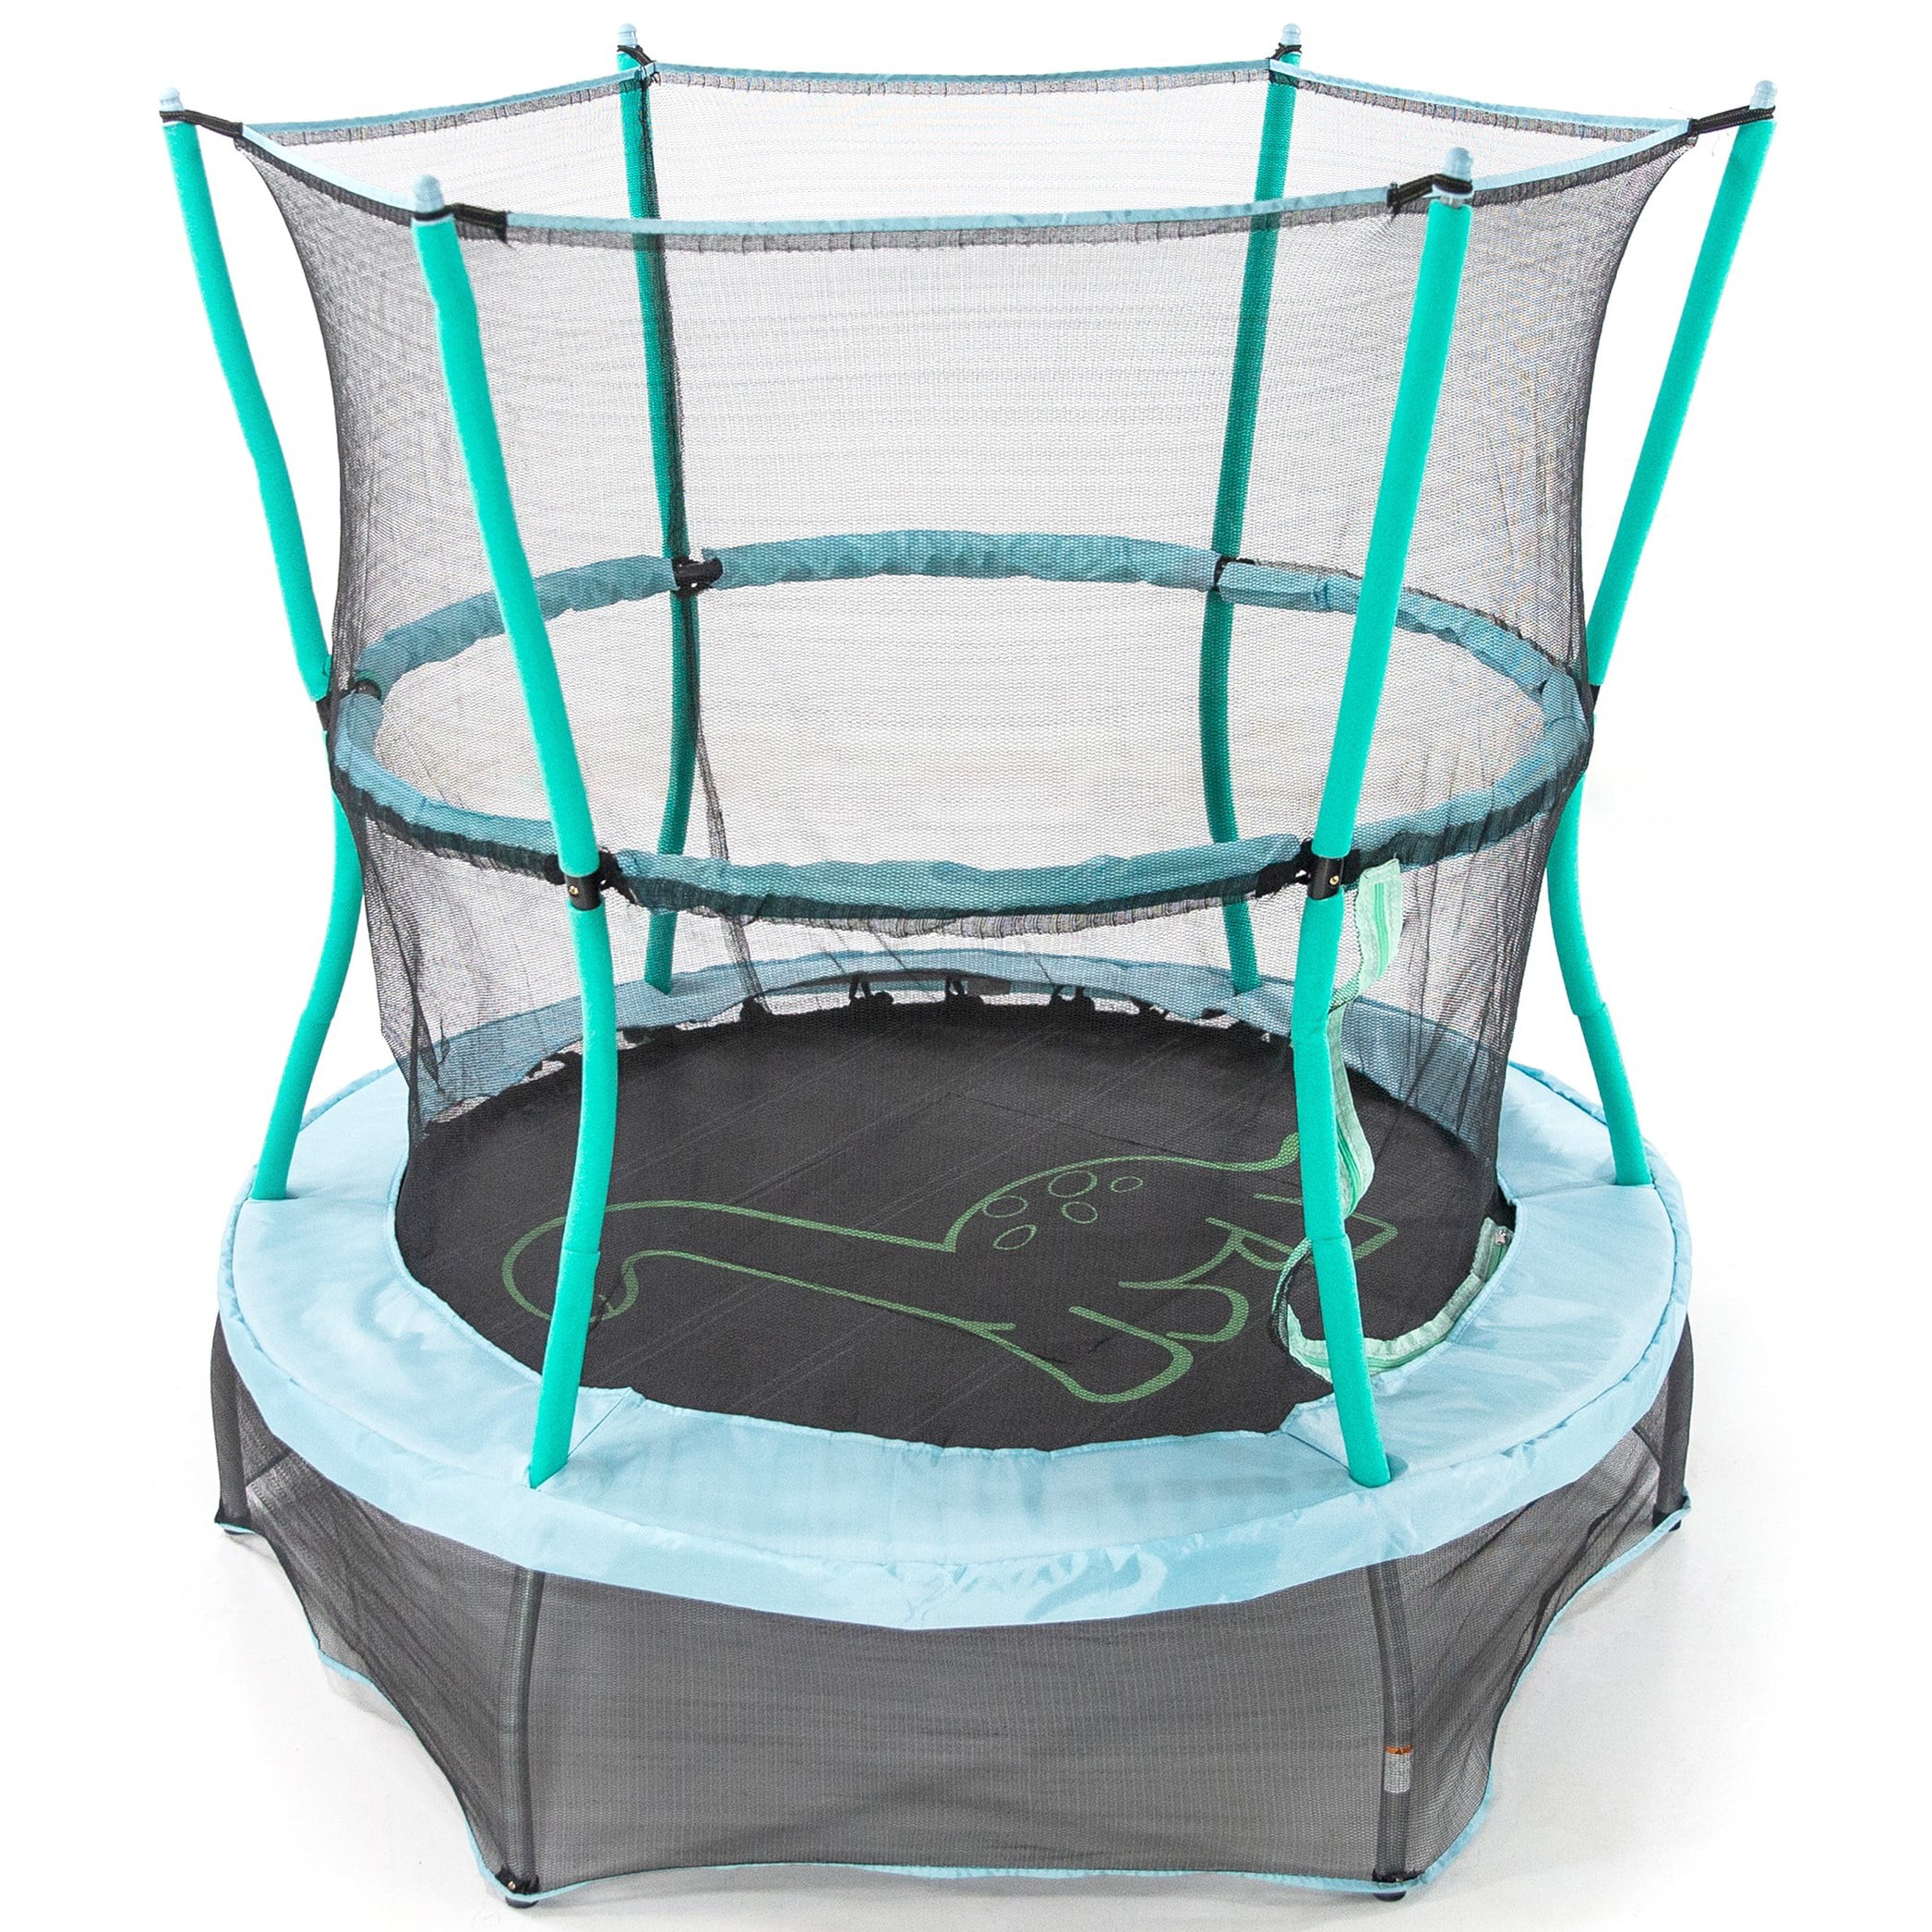 Skywalker Trampolines 55-Inch Bounce-N-Learn Trampoline, with Enclosure and Sound, Stomping Dinosaur